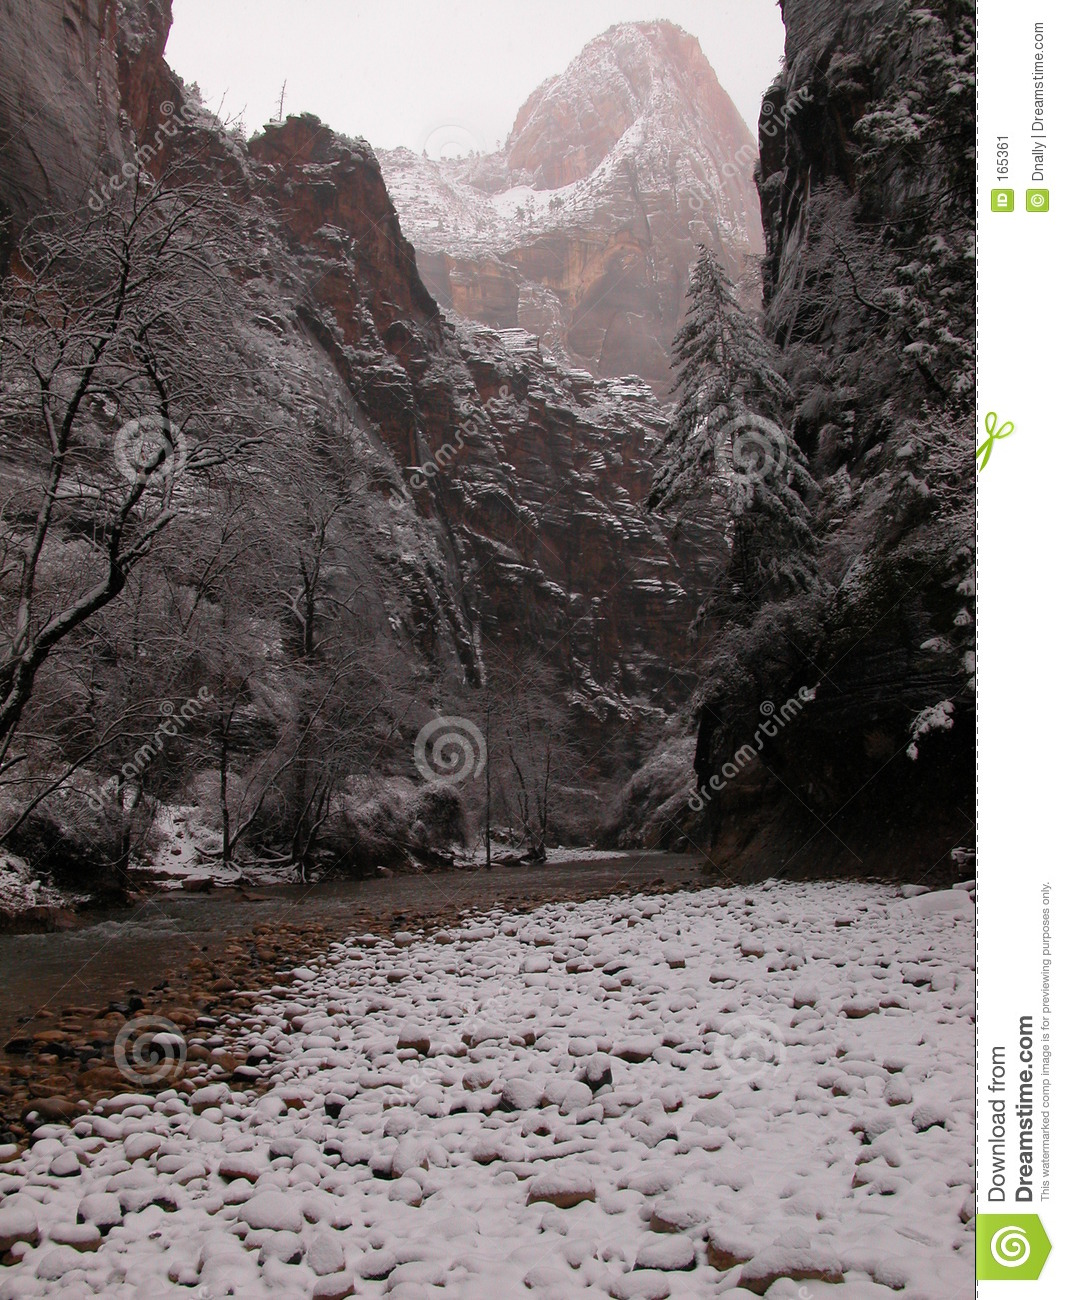 Foggy and Snowy Zion Narrows